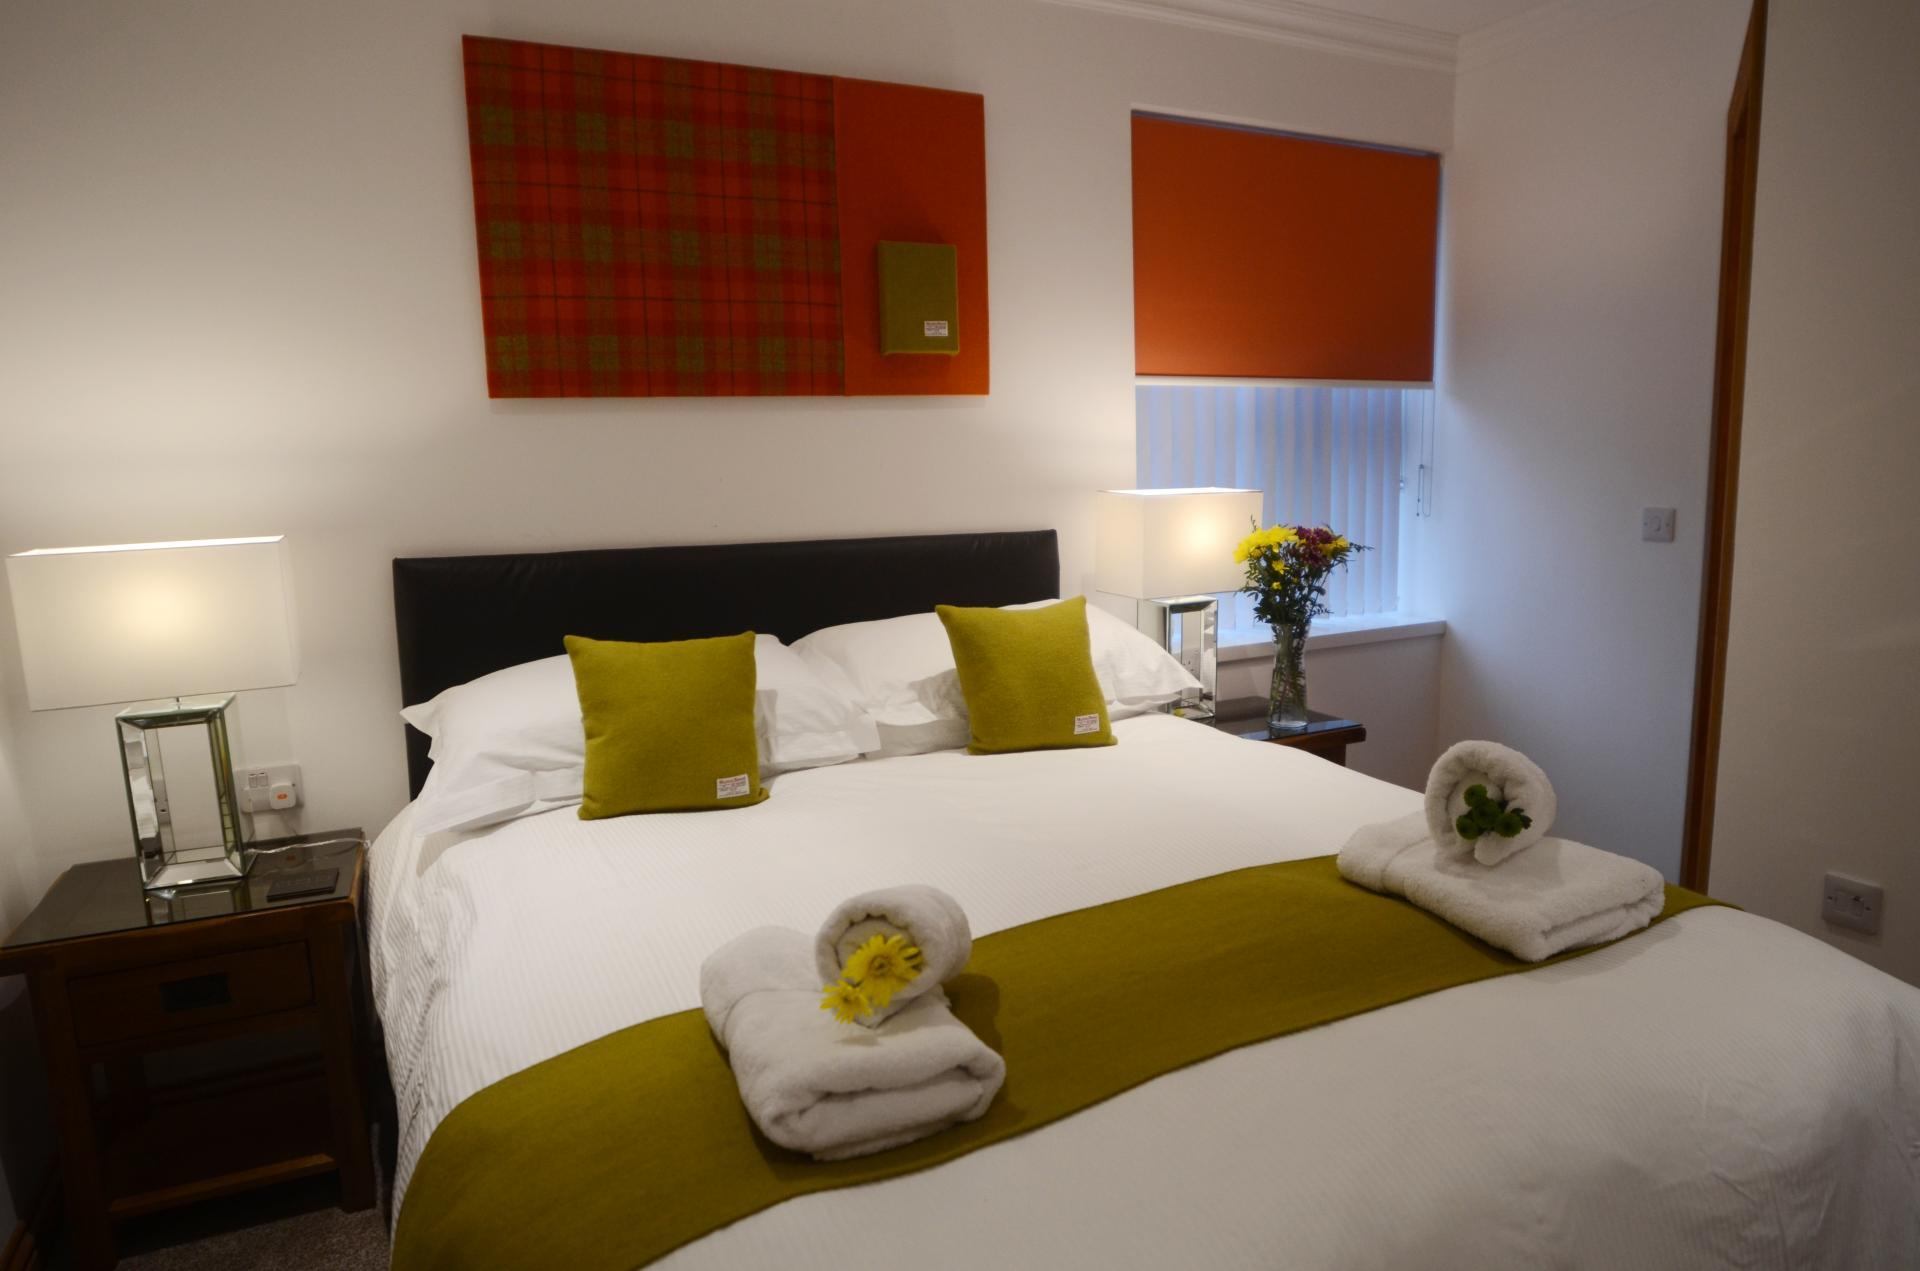 Kingsize (1500mm) bed, en-suite, sole occupancy, including full breakfast